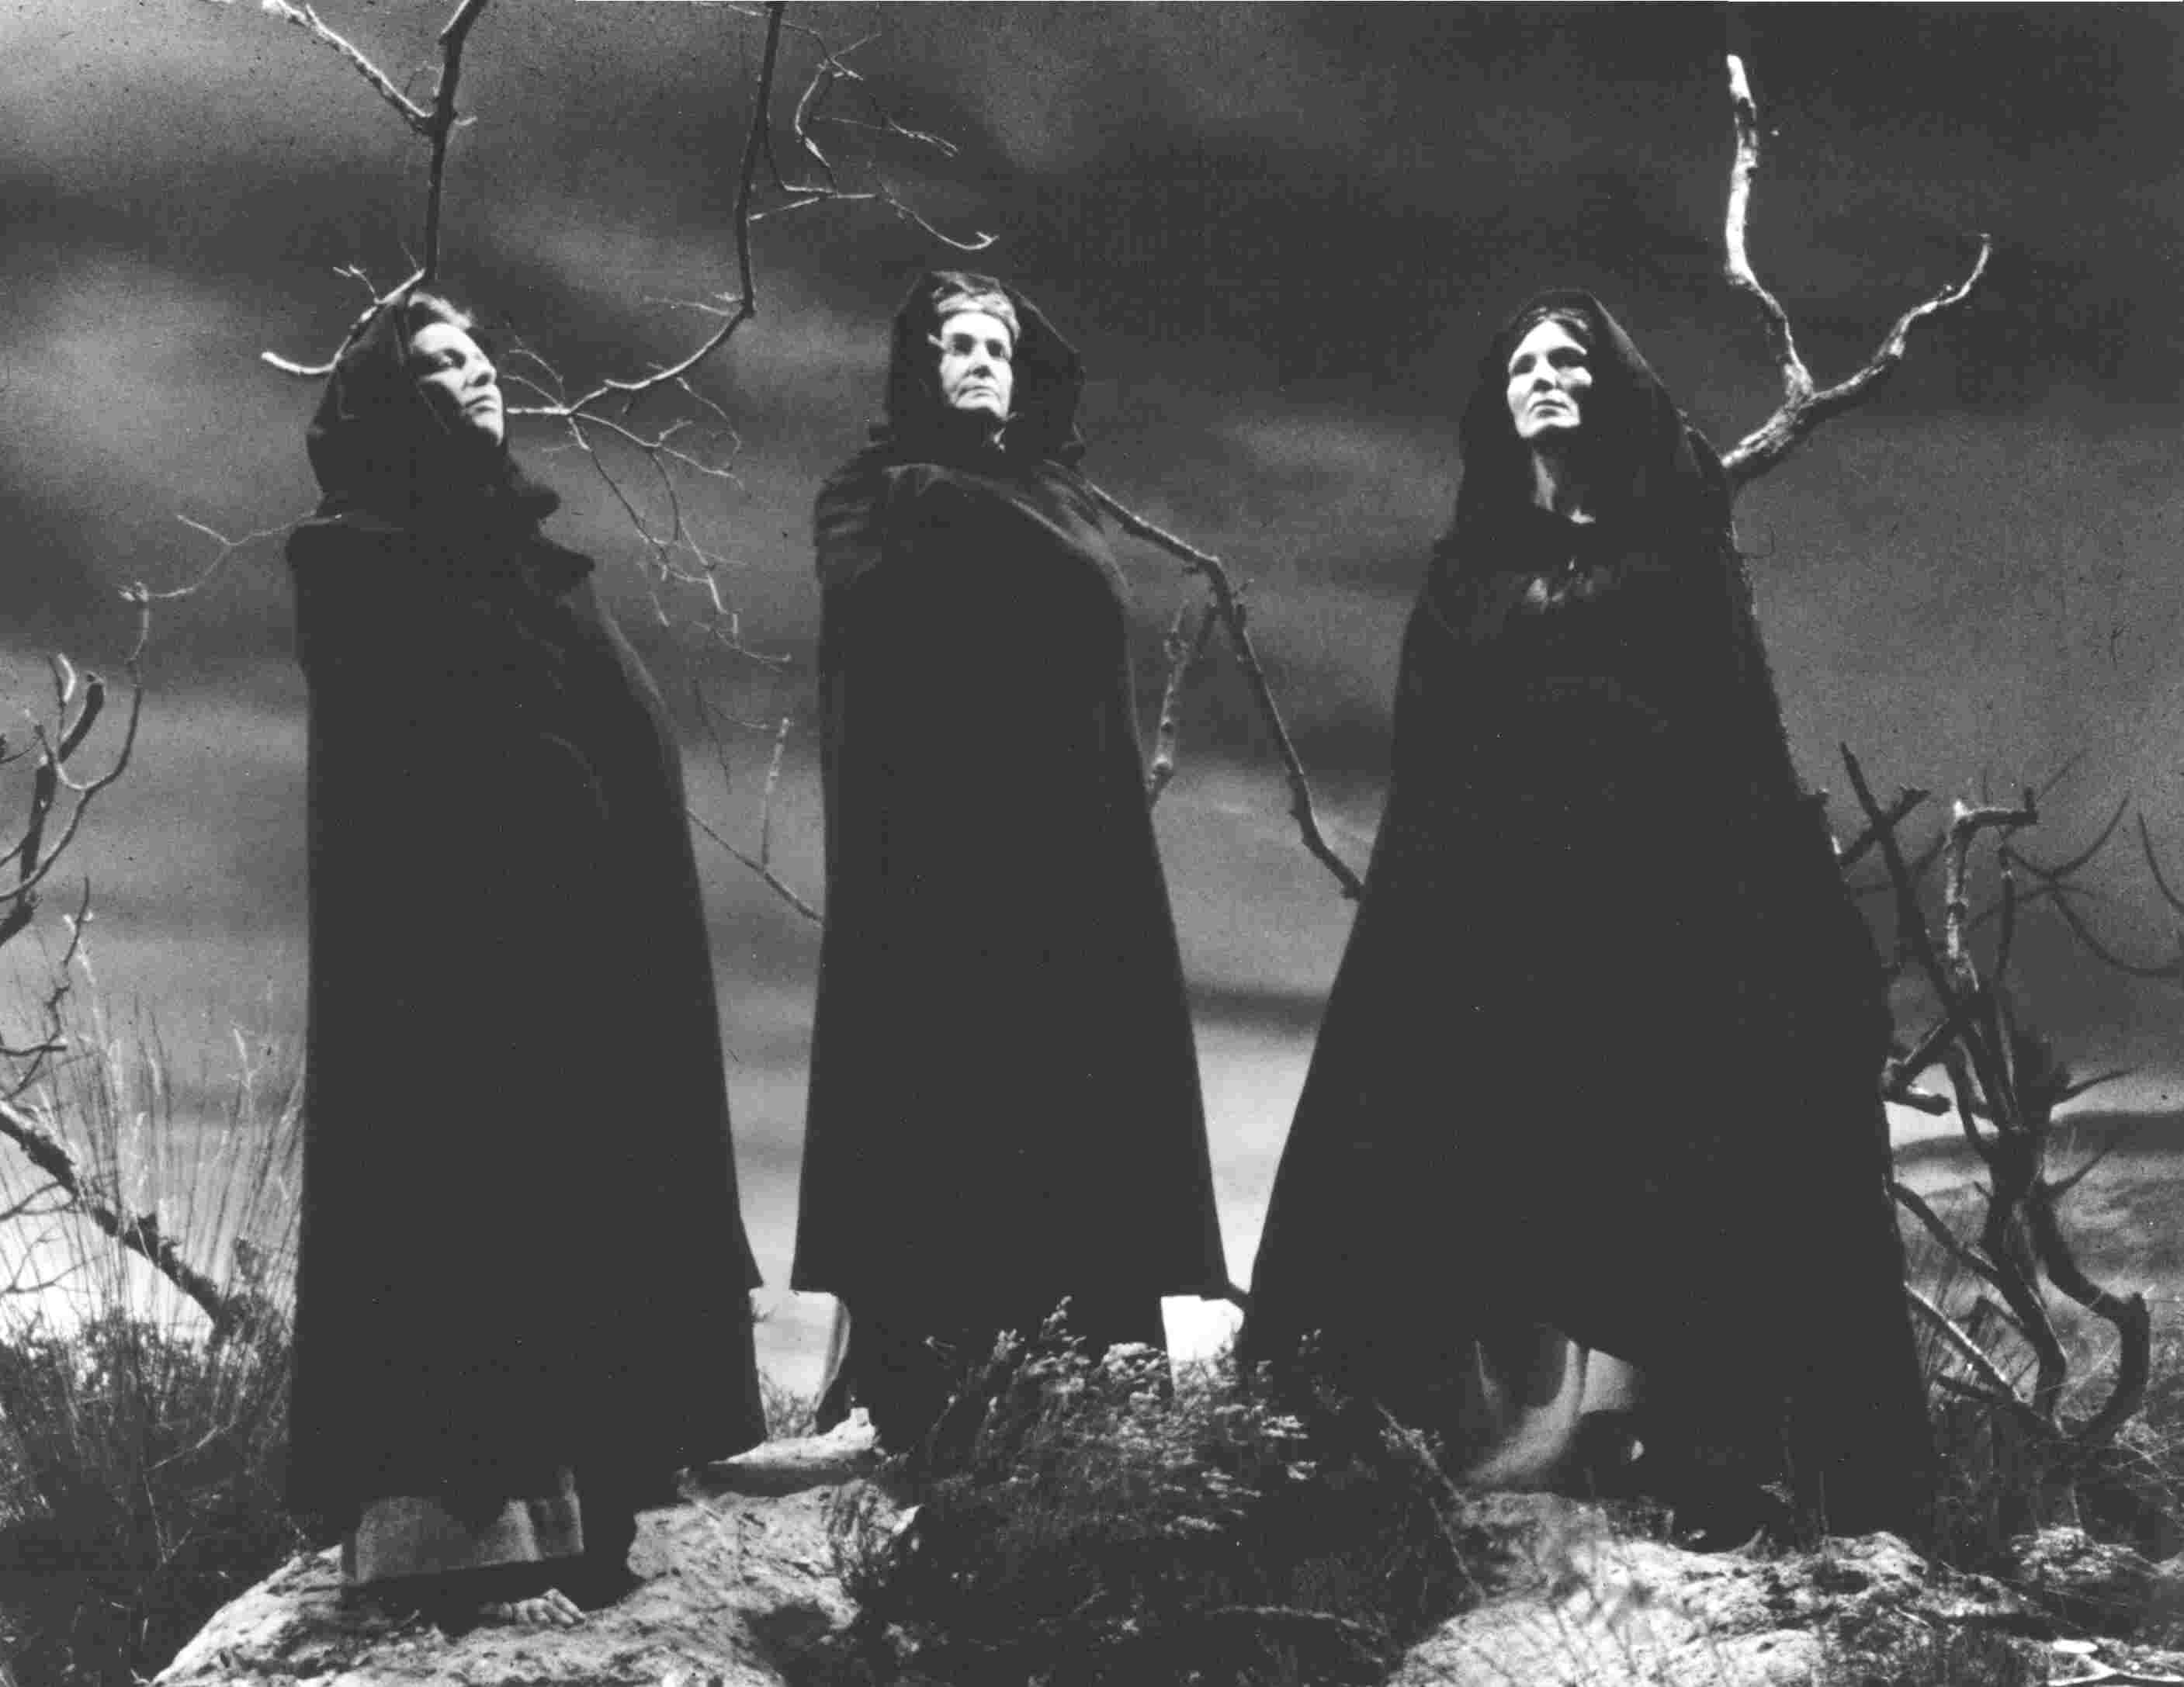 witches enlightened conflict